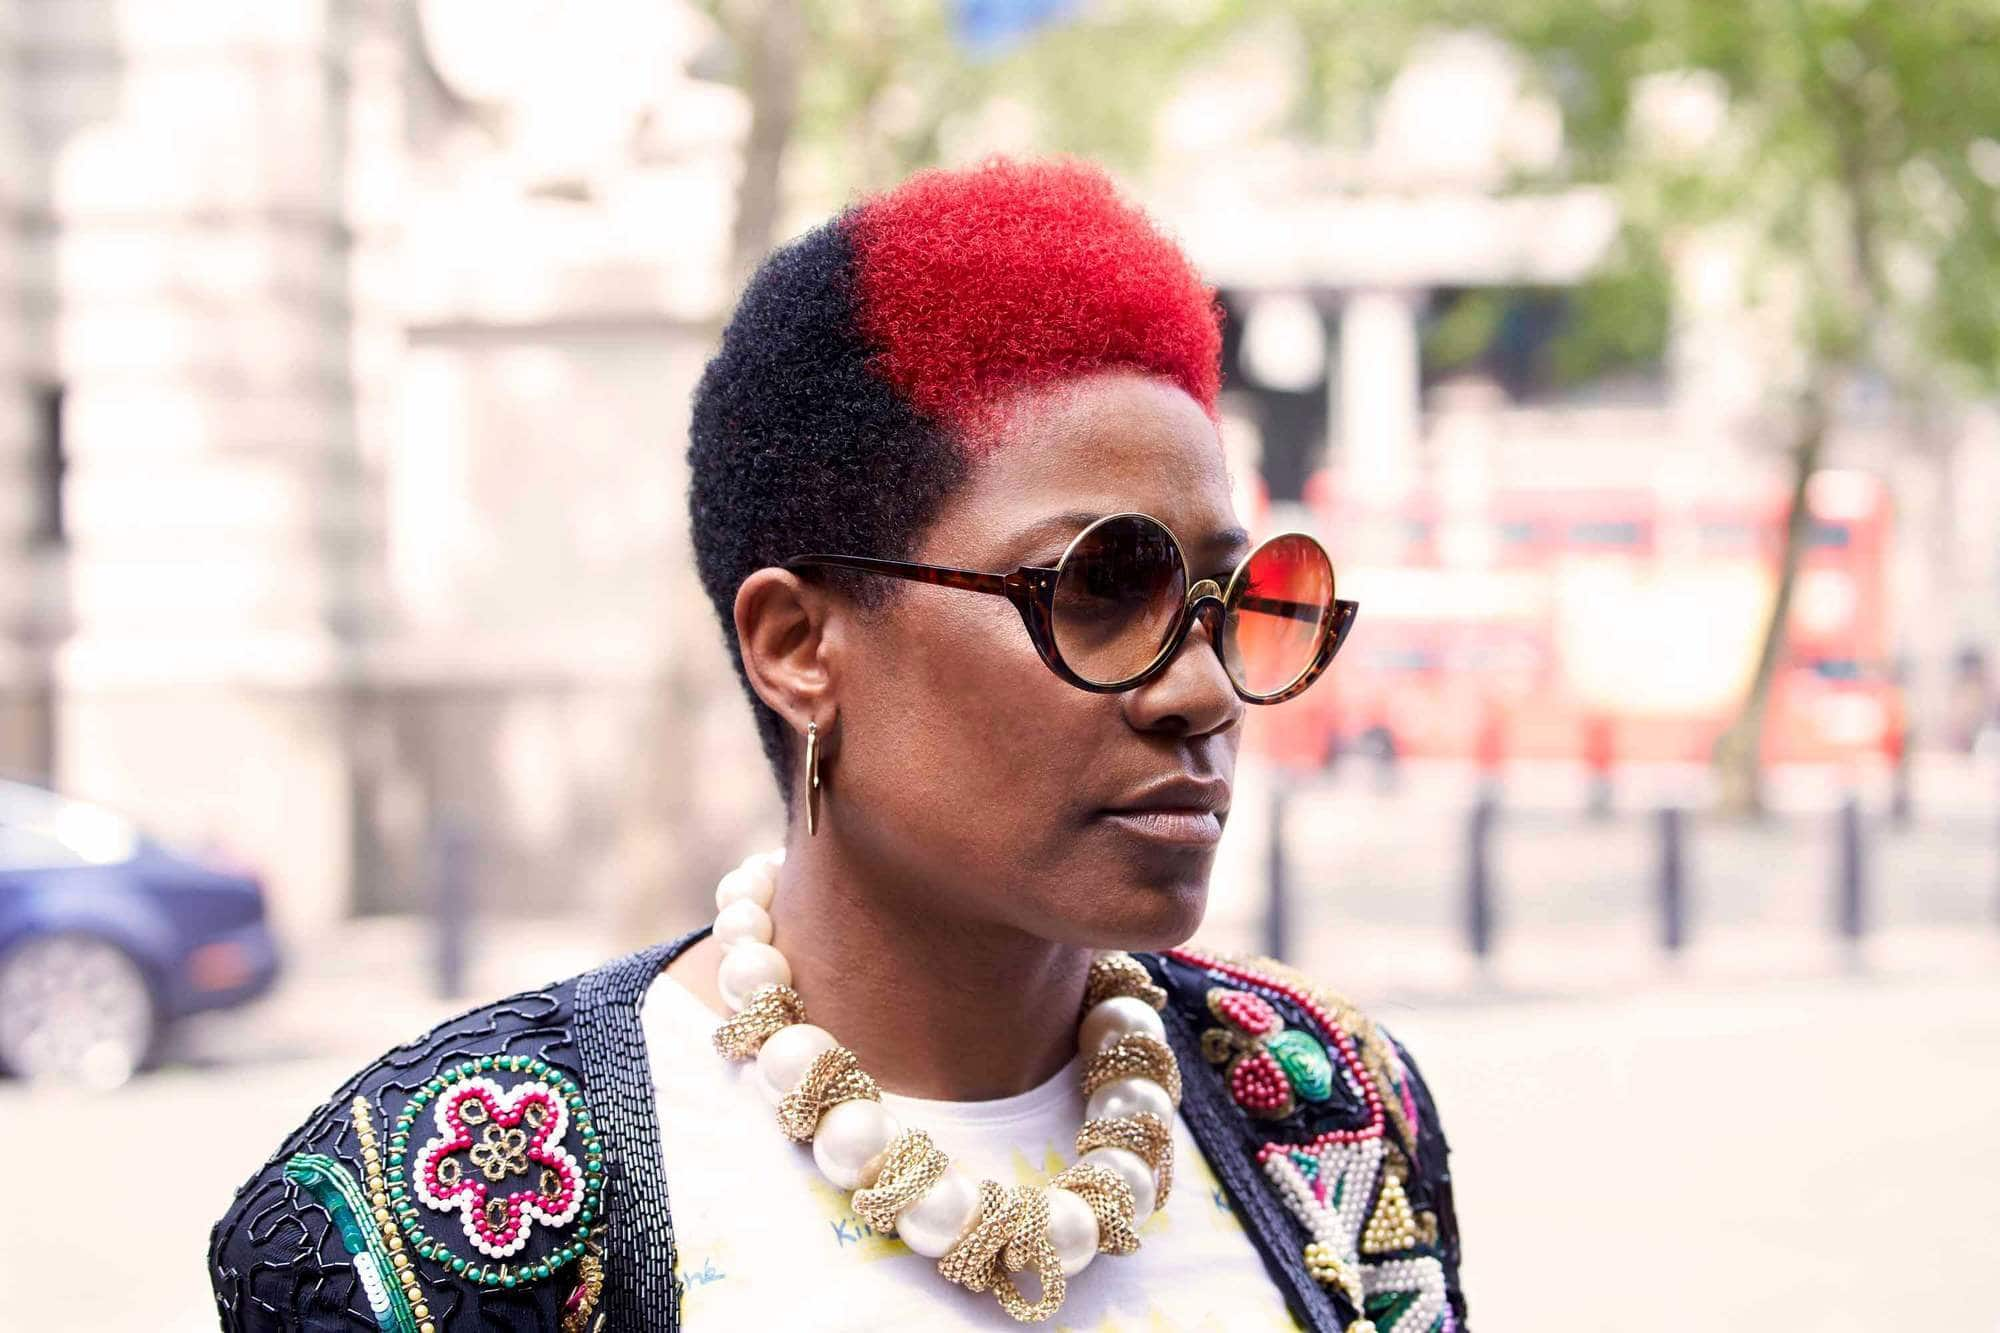 spring hair colors: bright red afro